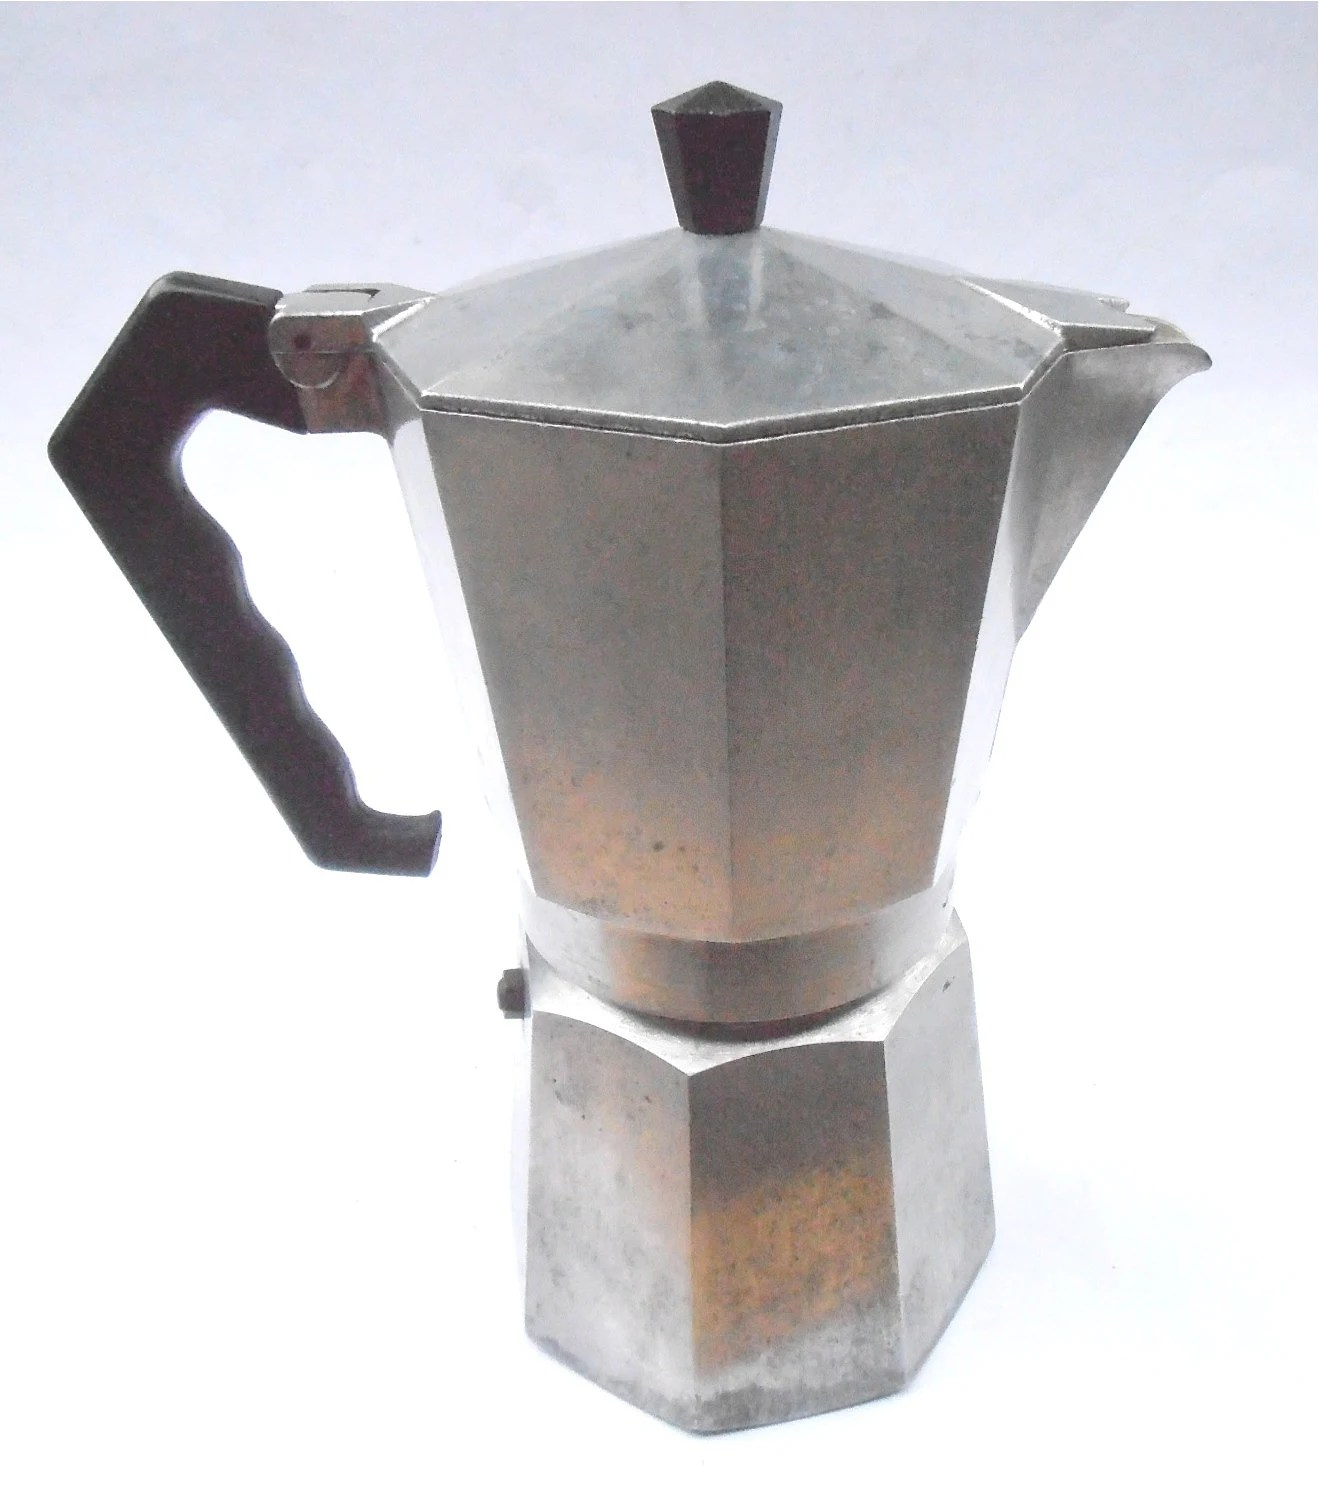 Arte Junior Replay Vintage Junior Express Espresso Coffee Pot Maker Italian Abc Crusinallo Aluminum Stove Top Mid Century Percolator Cafetiere 16 Ounces